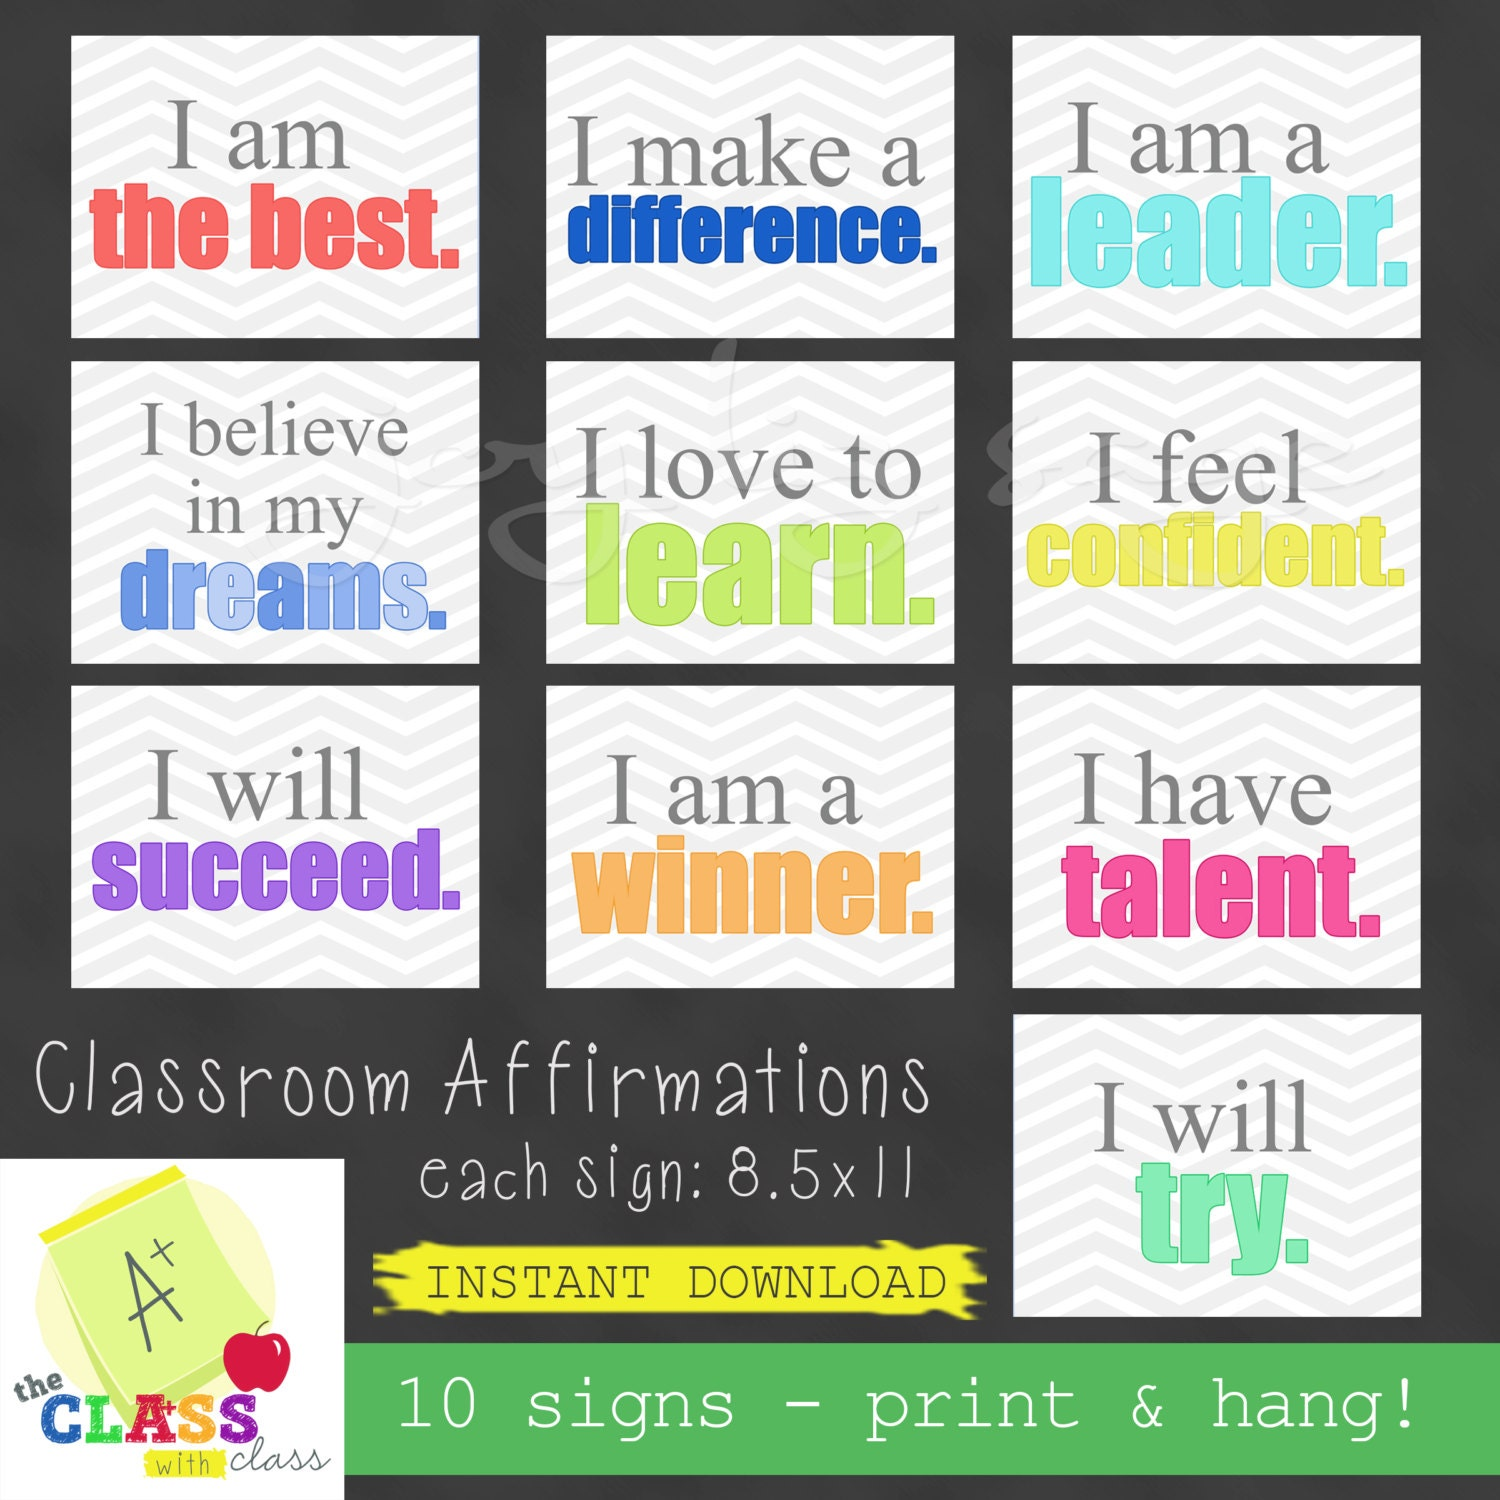 Classroom Affirmations Chevron Print 10pack Digital Download. Cell Phone Alarm System Delancy Street Movers. Criminal Lawyer Albuquerque Satelite Dish Tv. Home Remedies To Get Rid Of Rats In The House. Self Maintained Websites Home Insurance In Ny. Online Clinical Laboratory Science Programs. Sexual Harassment Training For Employees. Technical Schools In Tallahassee Fl. Private Schools Boca Raton Movies In Sherwood